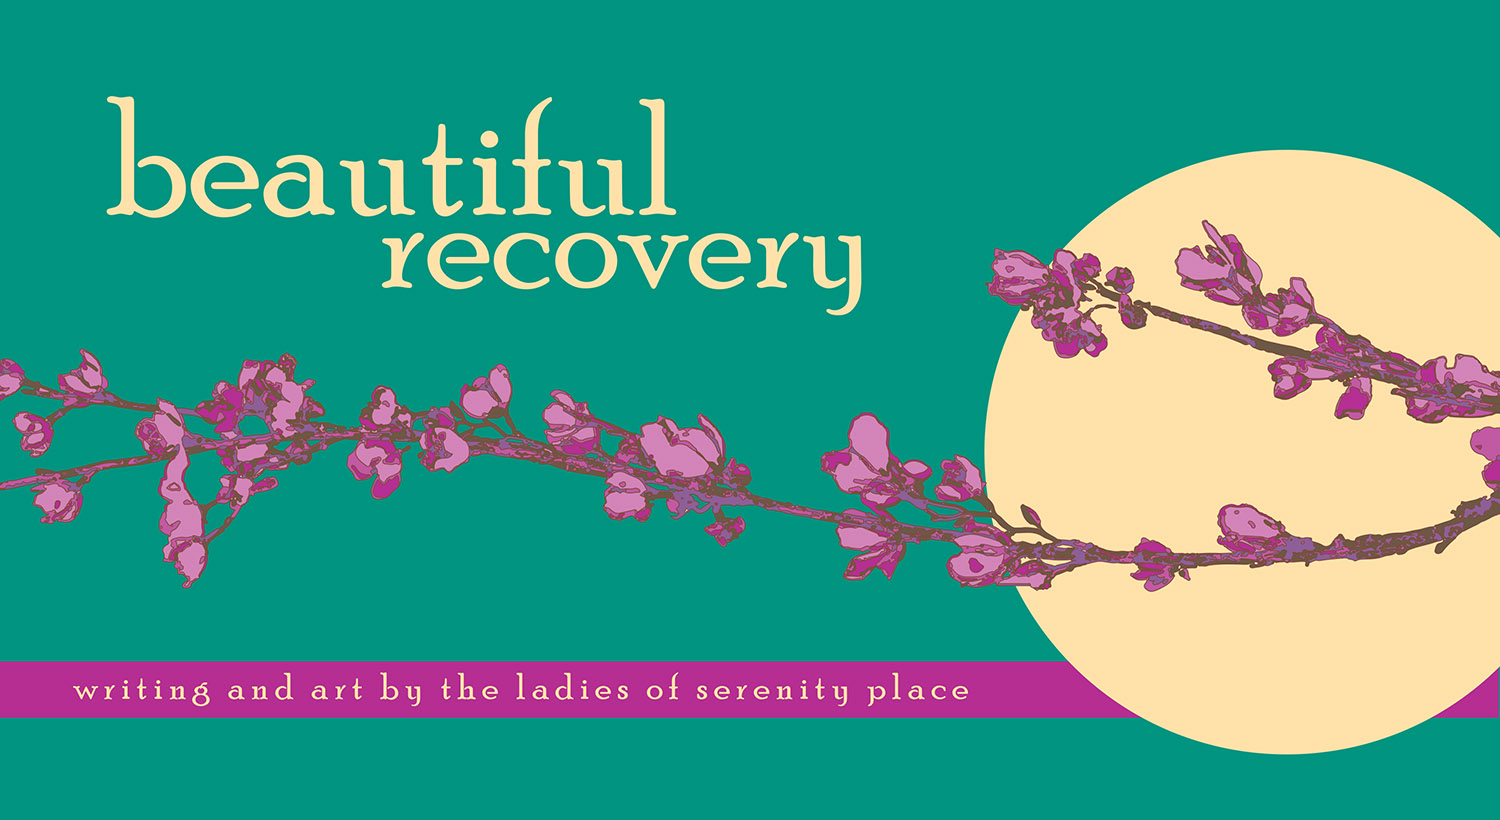 """The Applied Theatre Center partnered with Serenity Place in 2018 to produce """"Beautiful Recovery"""", which featured writing and art by Serenity Place residents, as well as professional studio photographs of the writers and artists."""